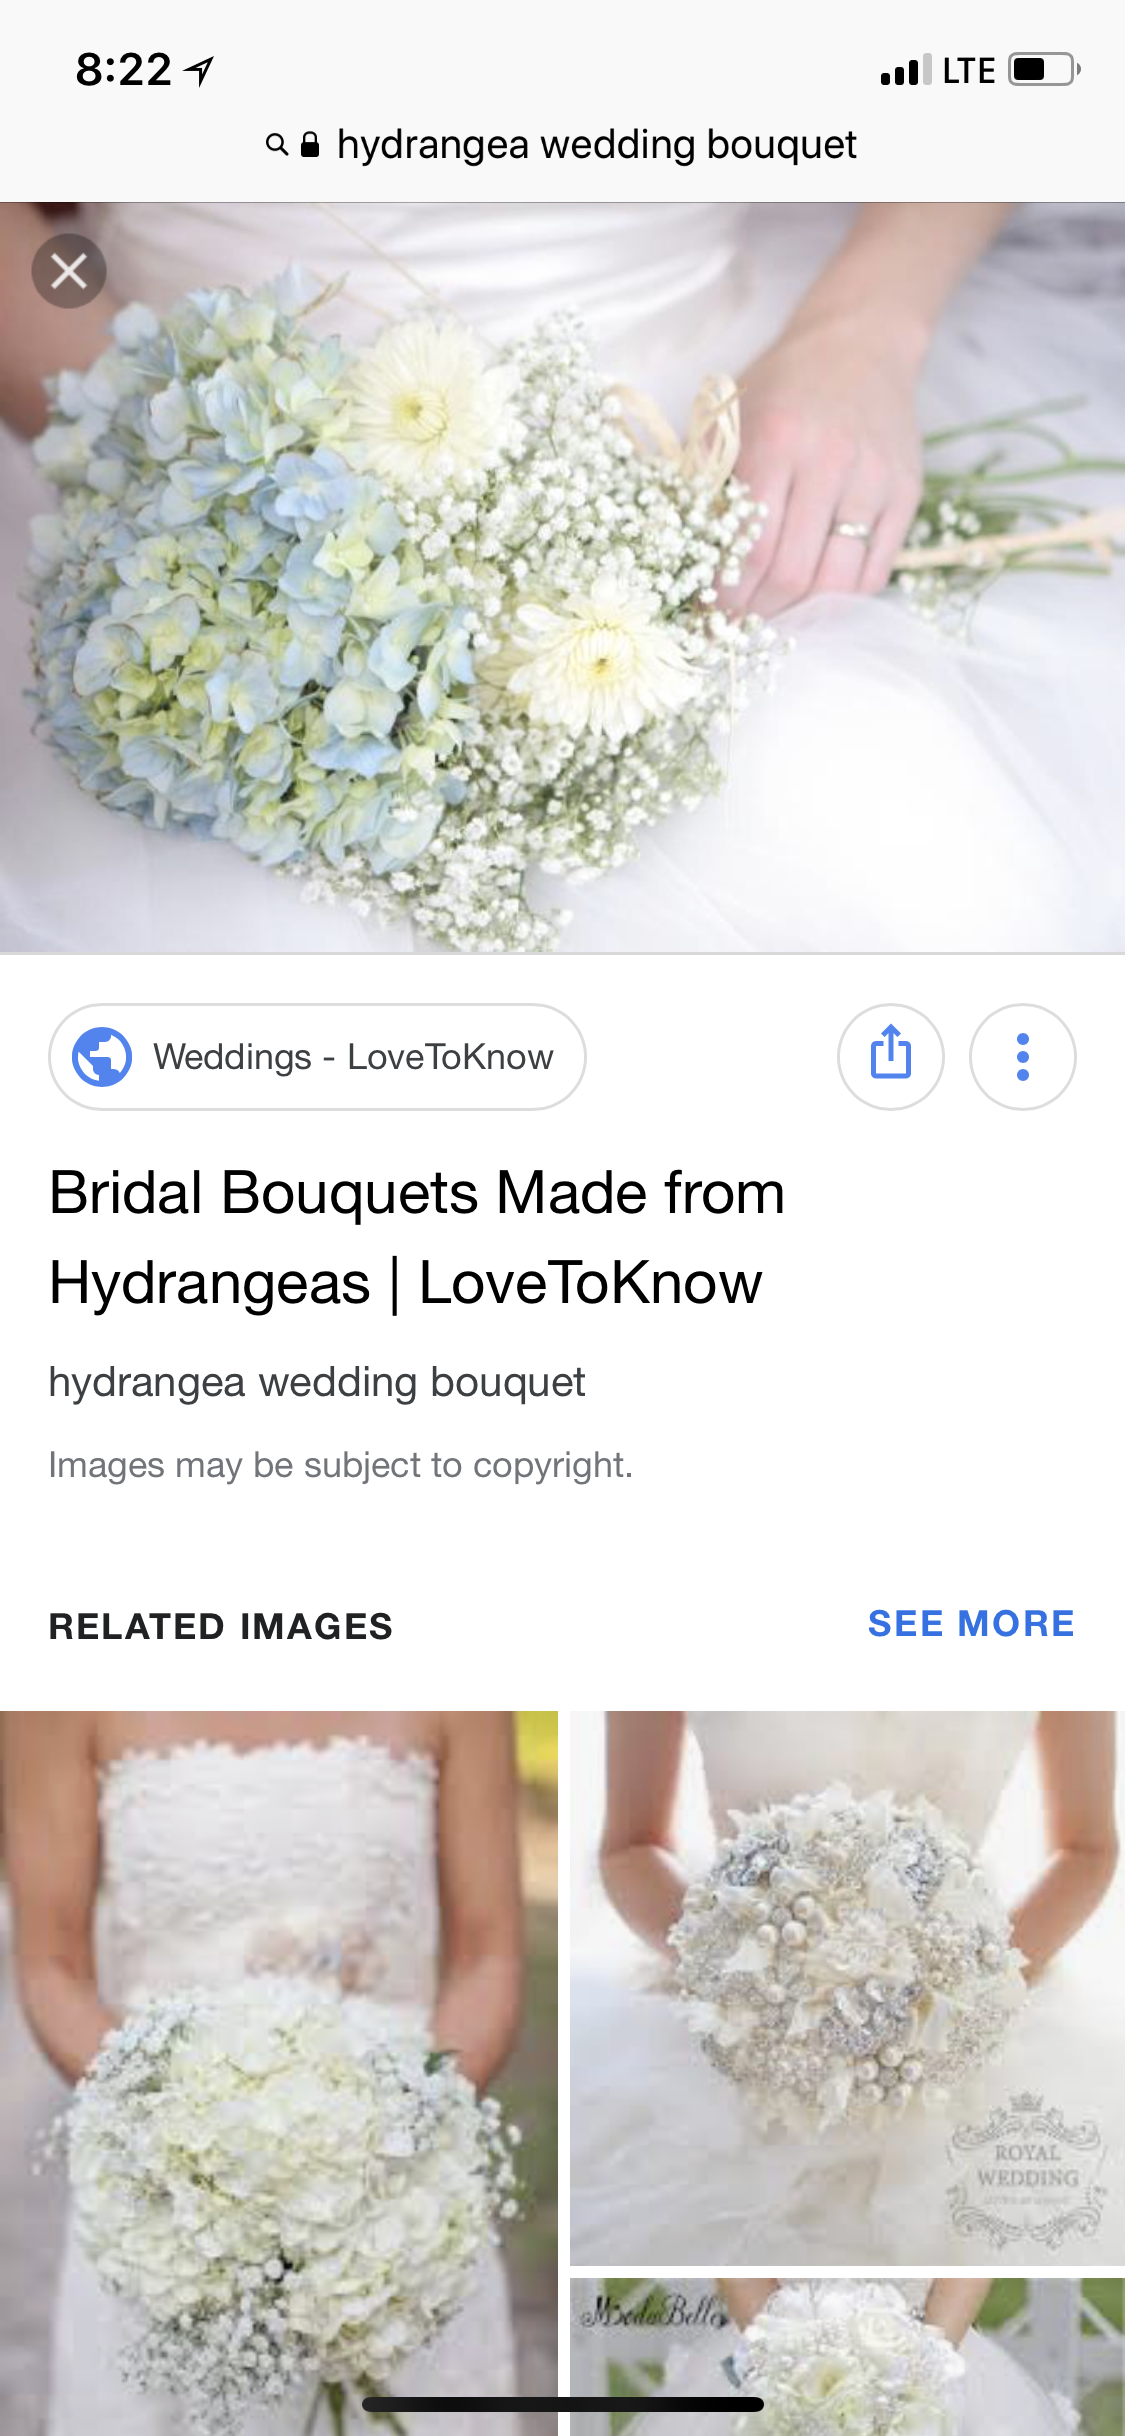 Pin by Lesley Fields on Wedding flowers-March 2019 | Pinterest